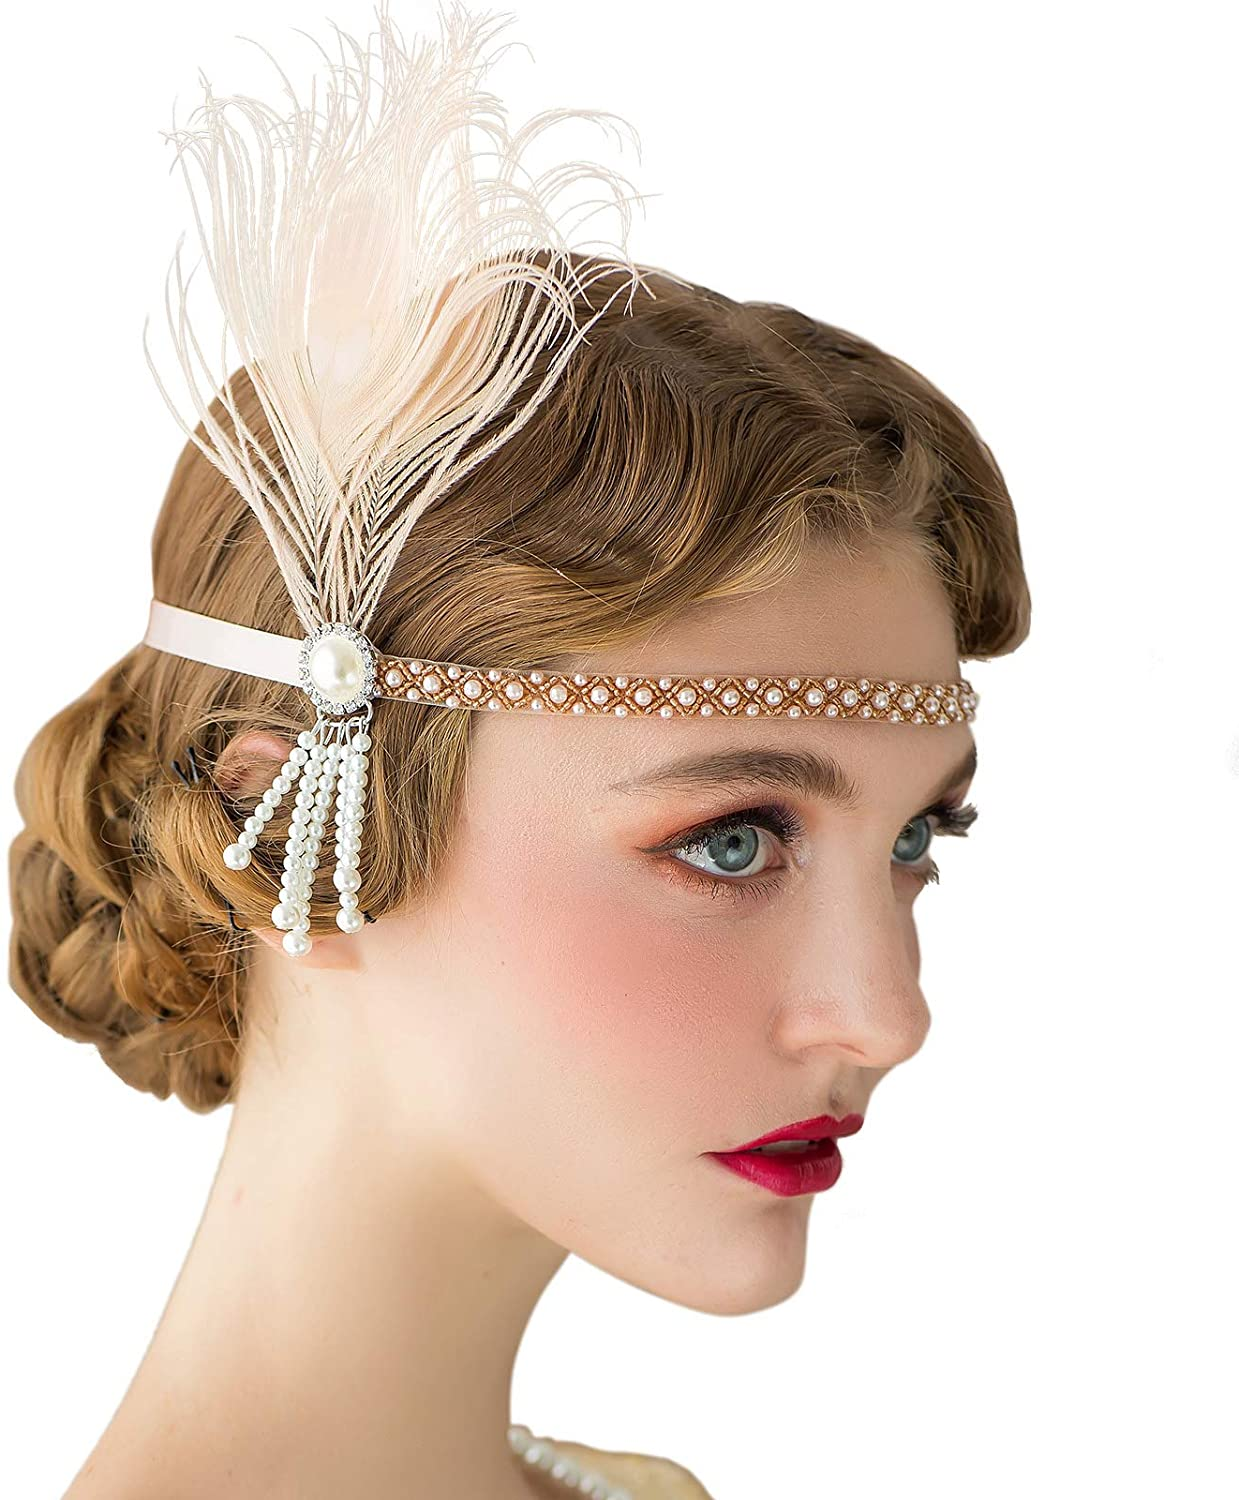 1920s Headband, Headpiece & Hair Accessory Styles SWEETV 1920s Headband Flapper Headpiece The Great Gatsby Party Accessories Roaring 20s Hair Accessories for Women & Flapper Girls £12.99 AT vintagedancer.com